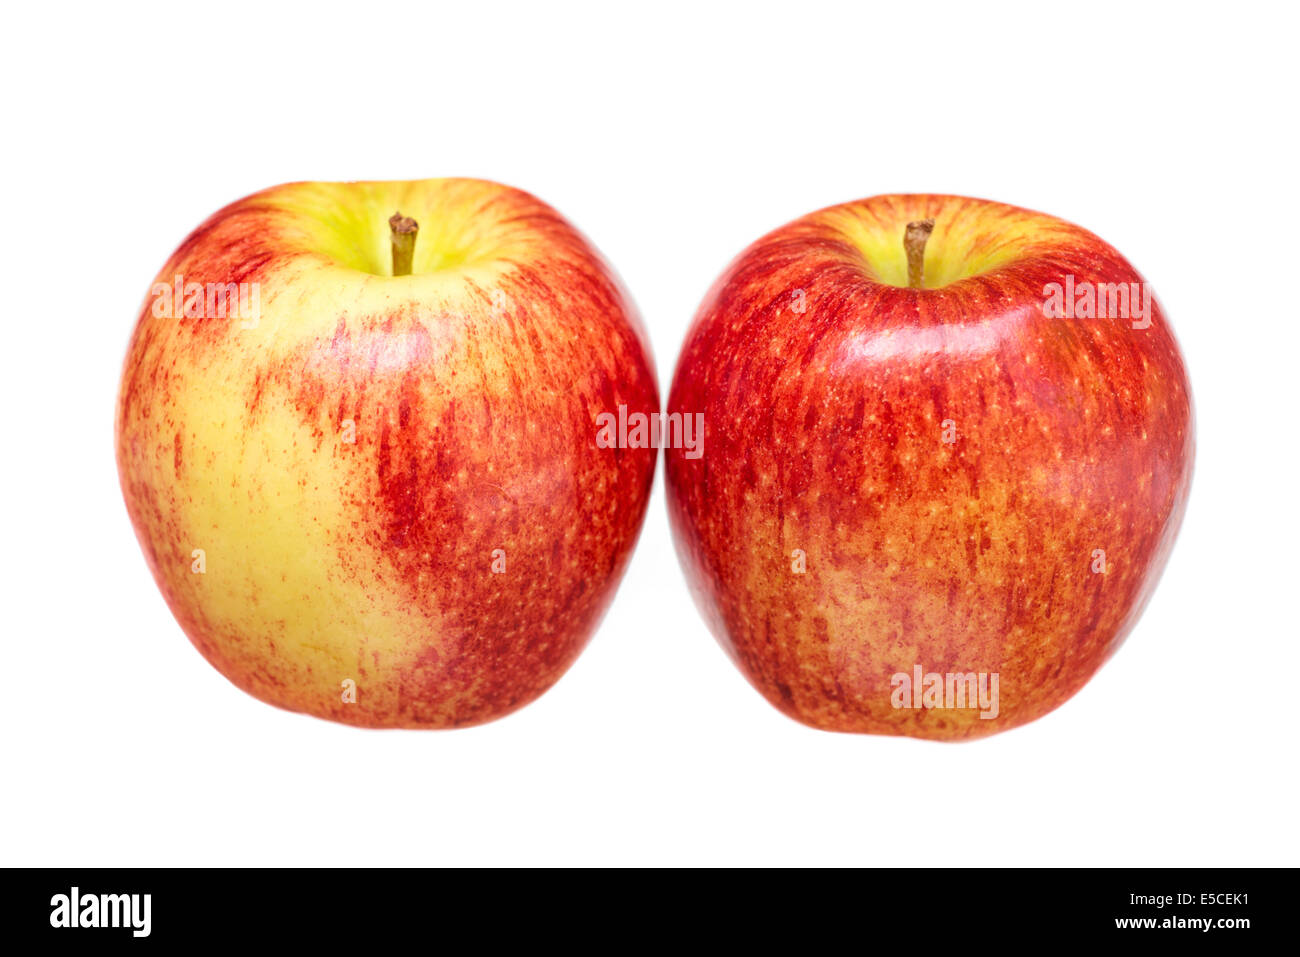 Apples, Red, Gala Apples - Stock Image